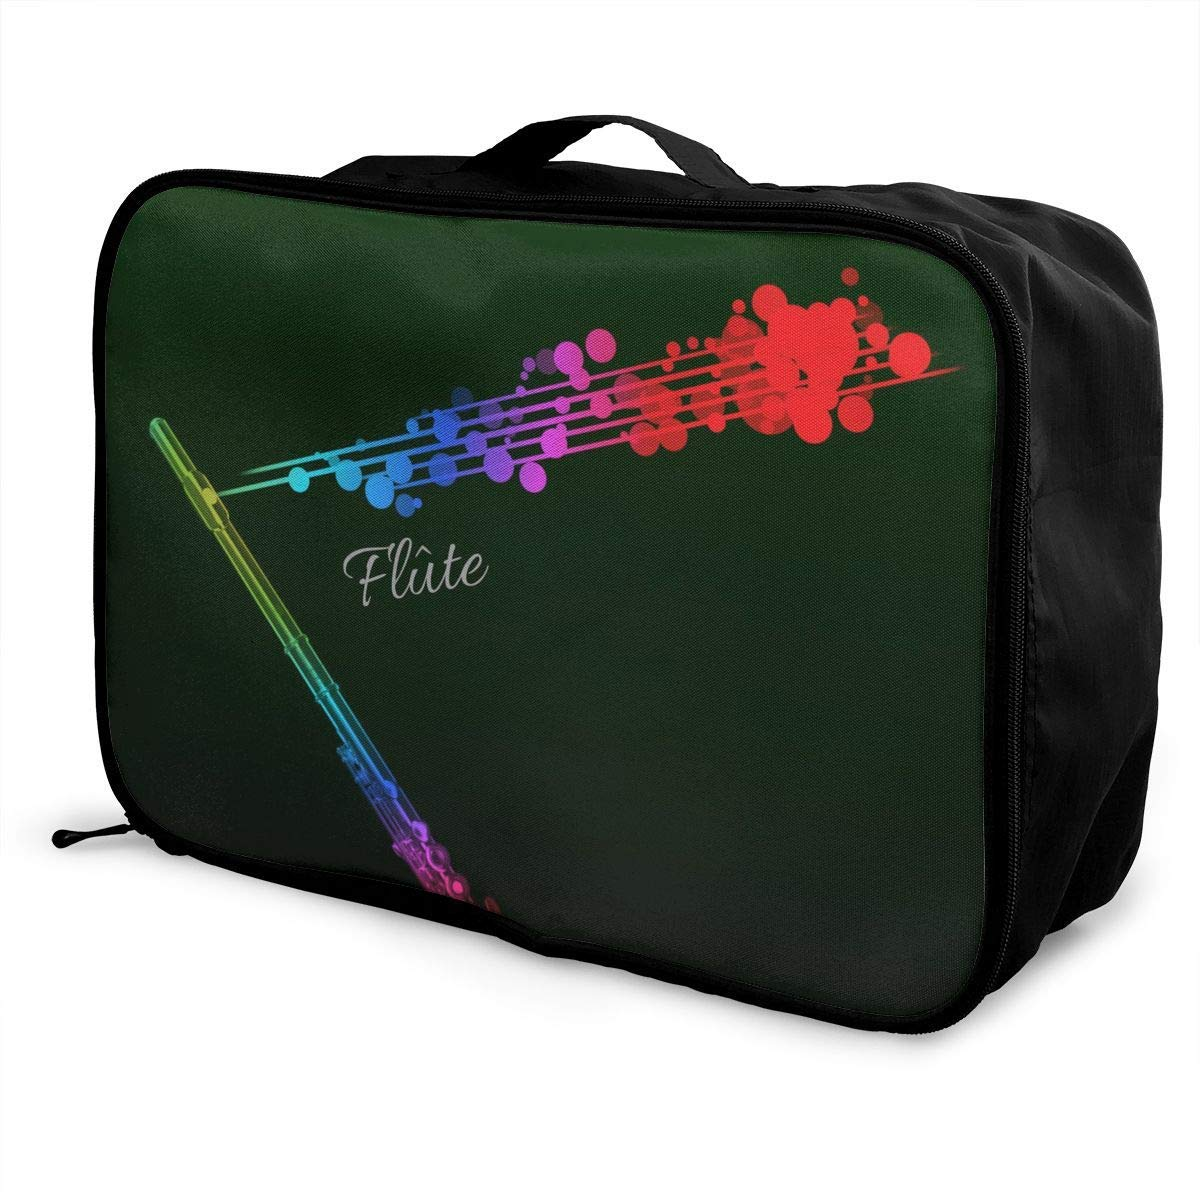 Lightweight Large Capacity Portable Duffel Bag for Men /& Women Color Music Flute Travel Duffel Bag Backpack JTRVW Luggage Bags for Travel